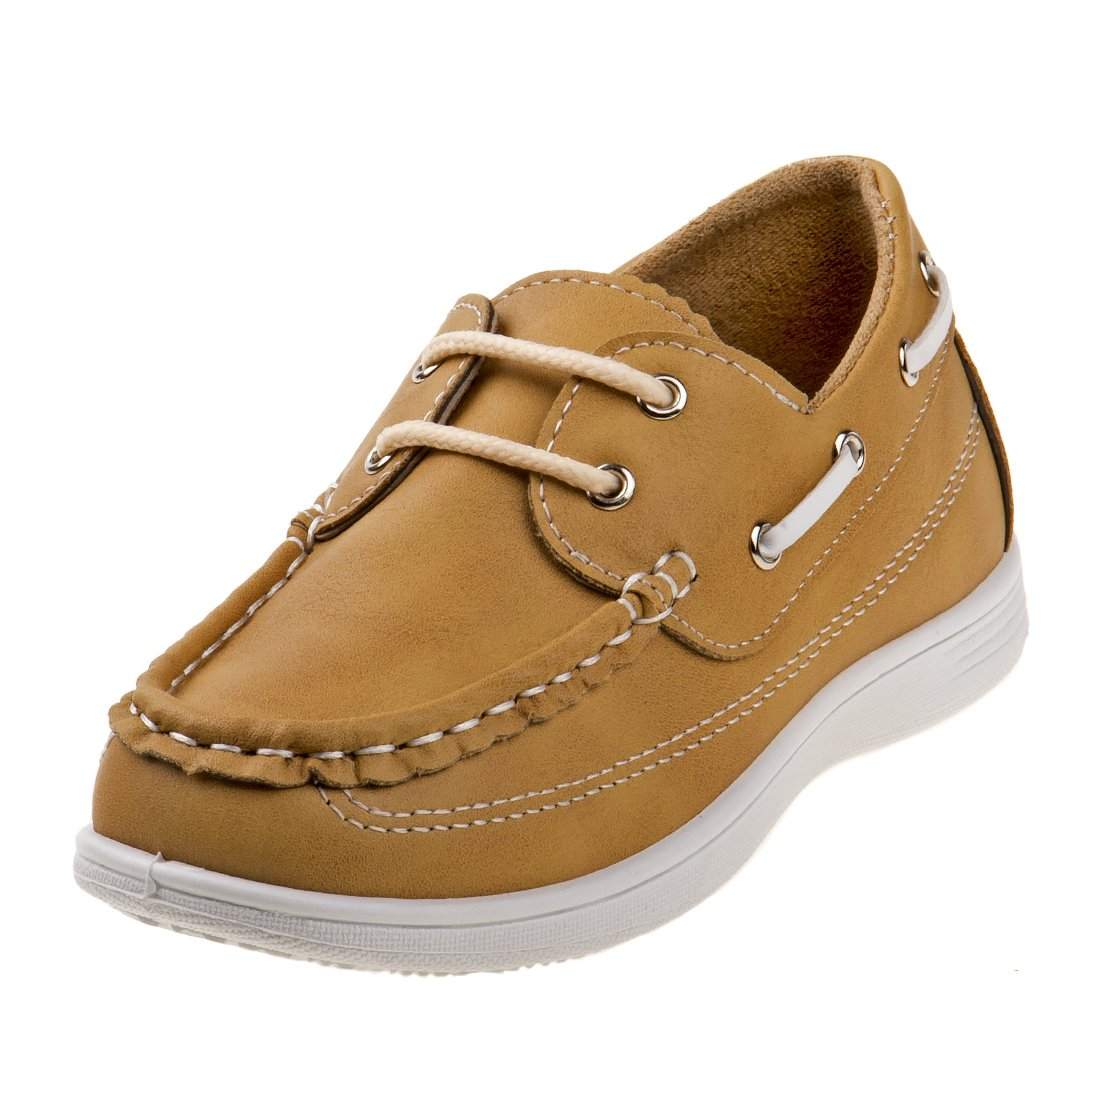 Josmo Boys Boat Shoes (Toddler, Little Kid, Big Kid)